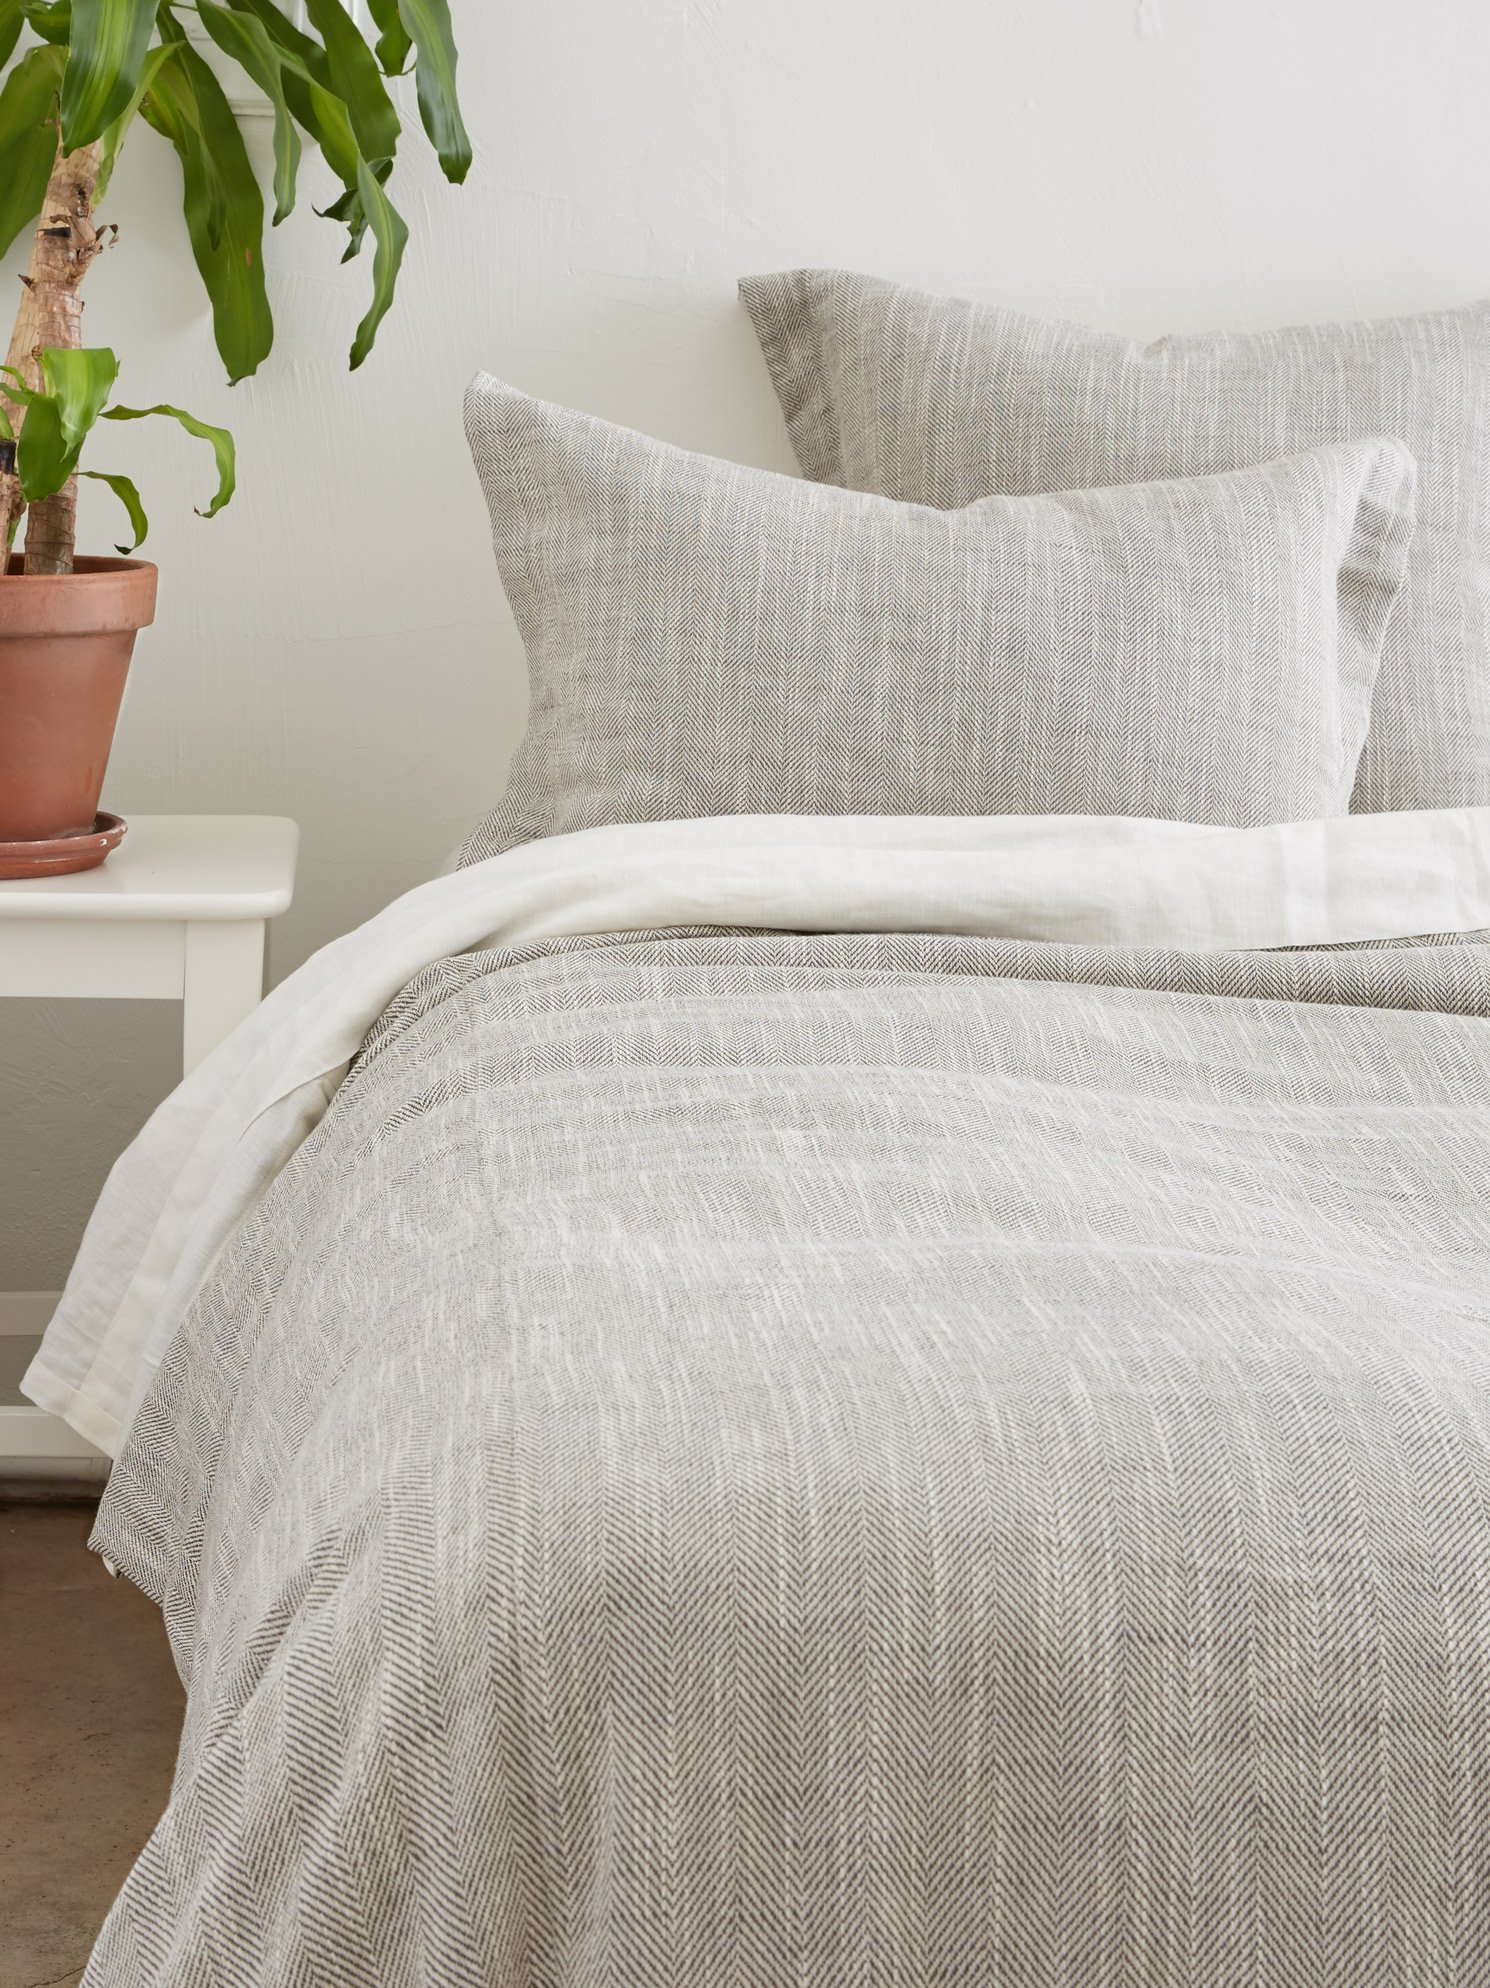 Amity Home Celine Duvet Cover Set, Queen, Gray